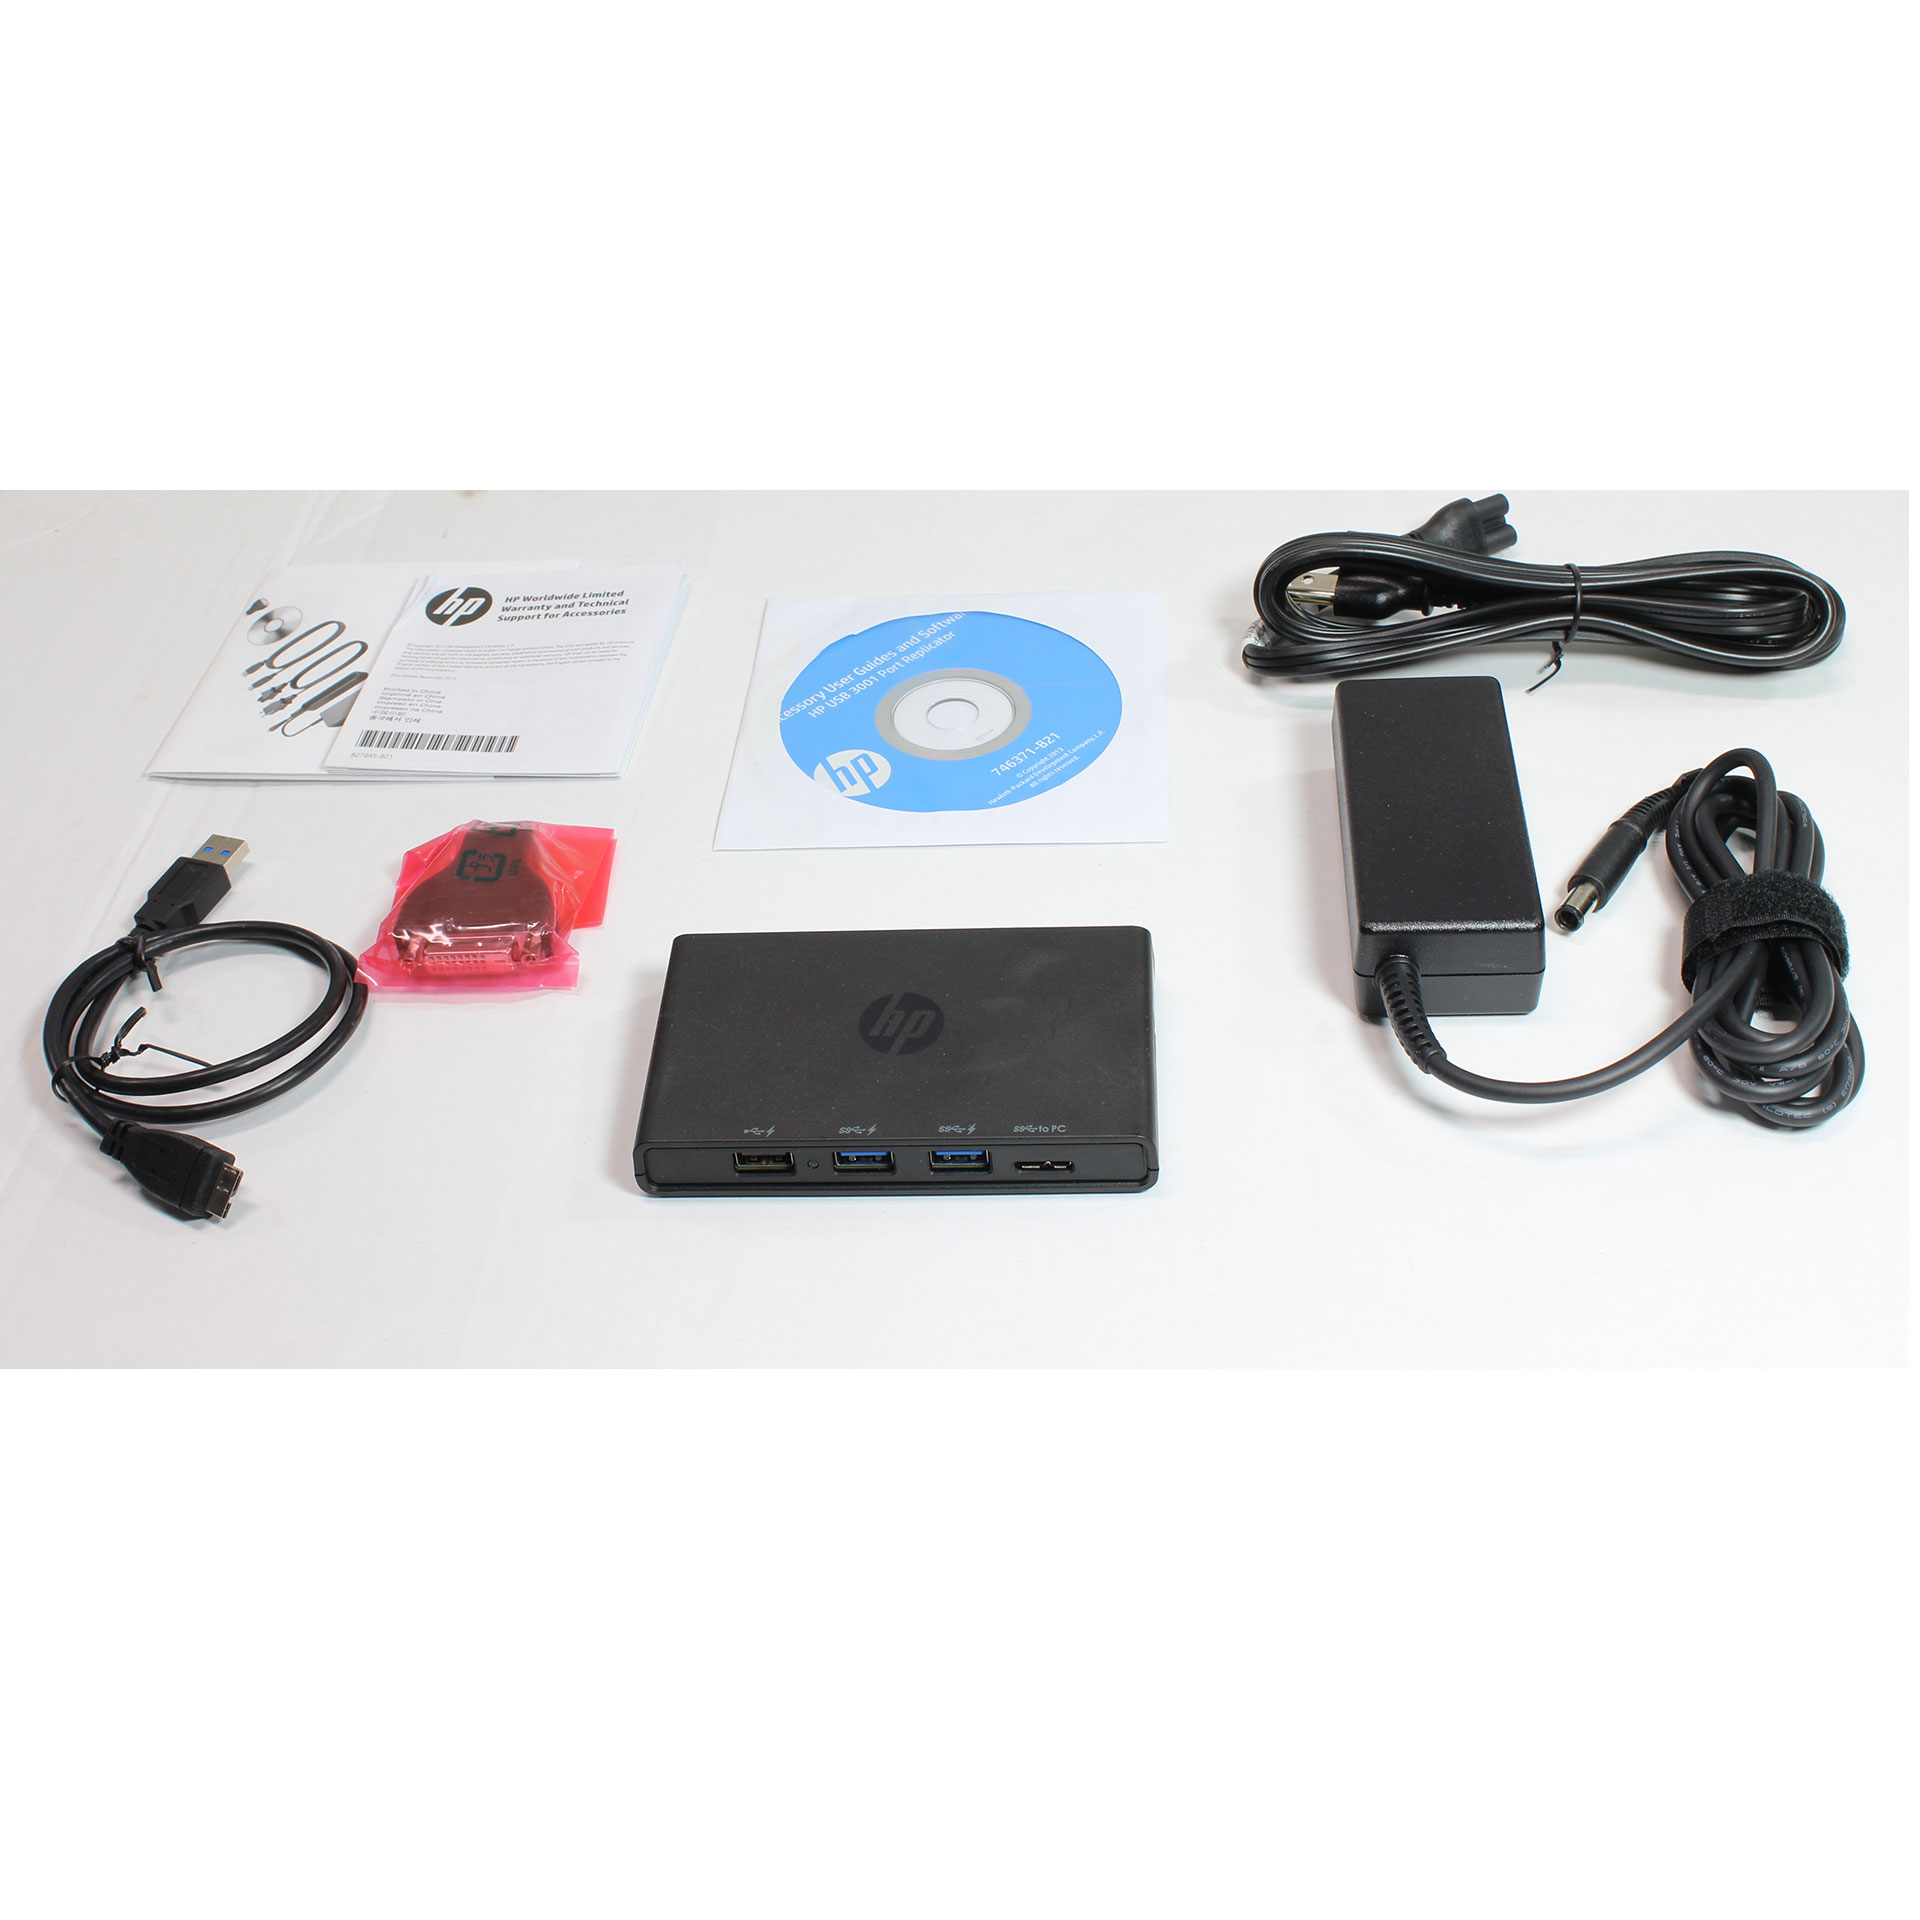 HP USB 3.0 Docking Station Port Replicator Notebook 745898-001